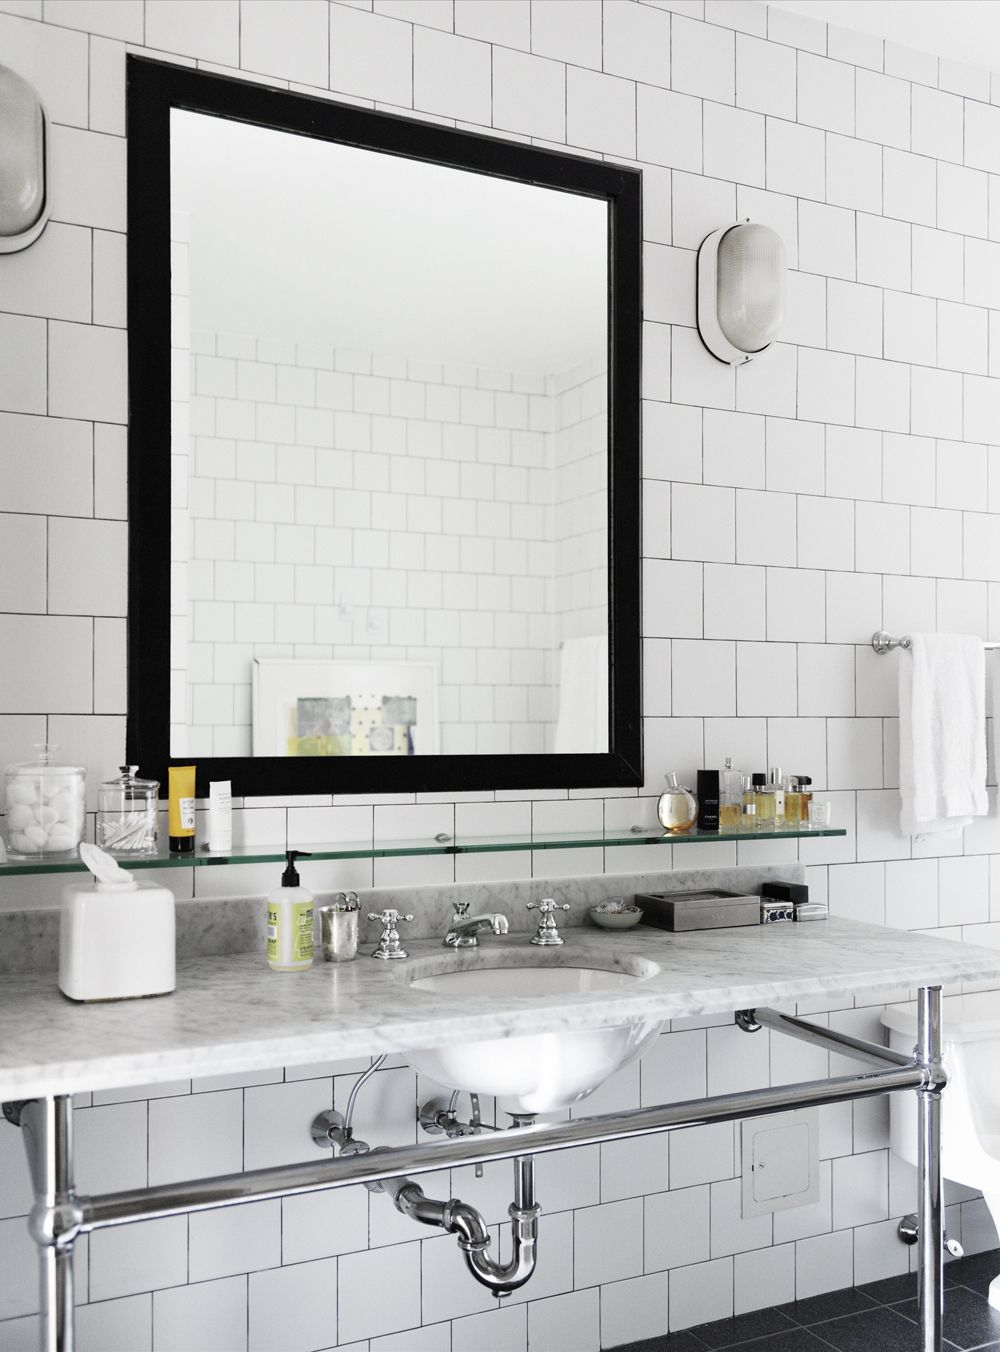 Square Mirror Design With Dark Black Mirror Frame Hanging On The ...